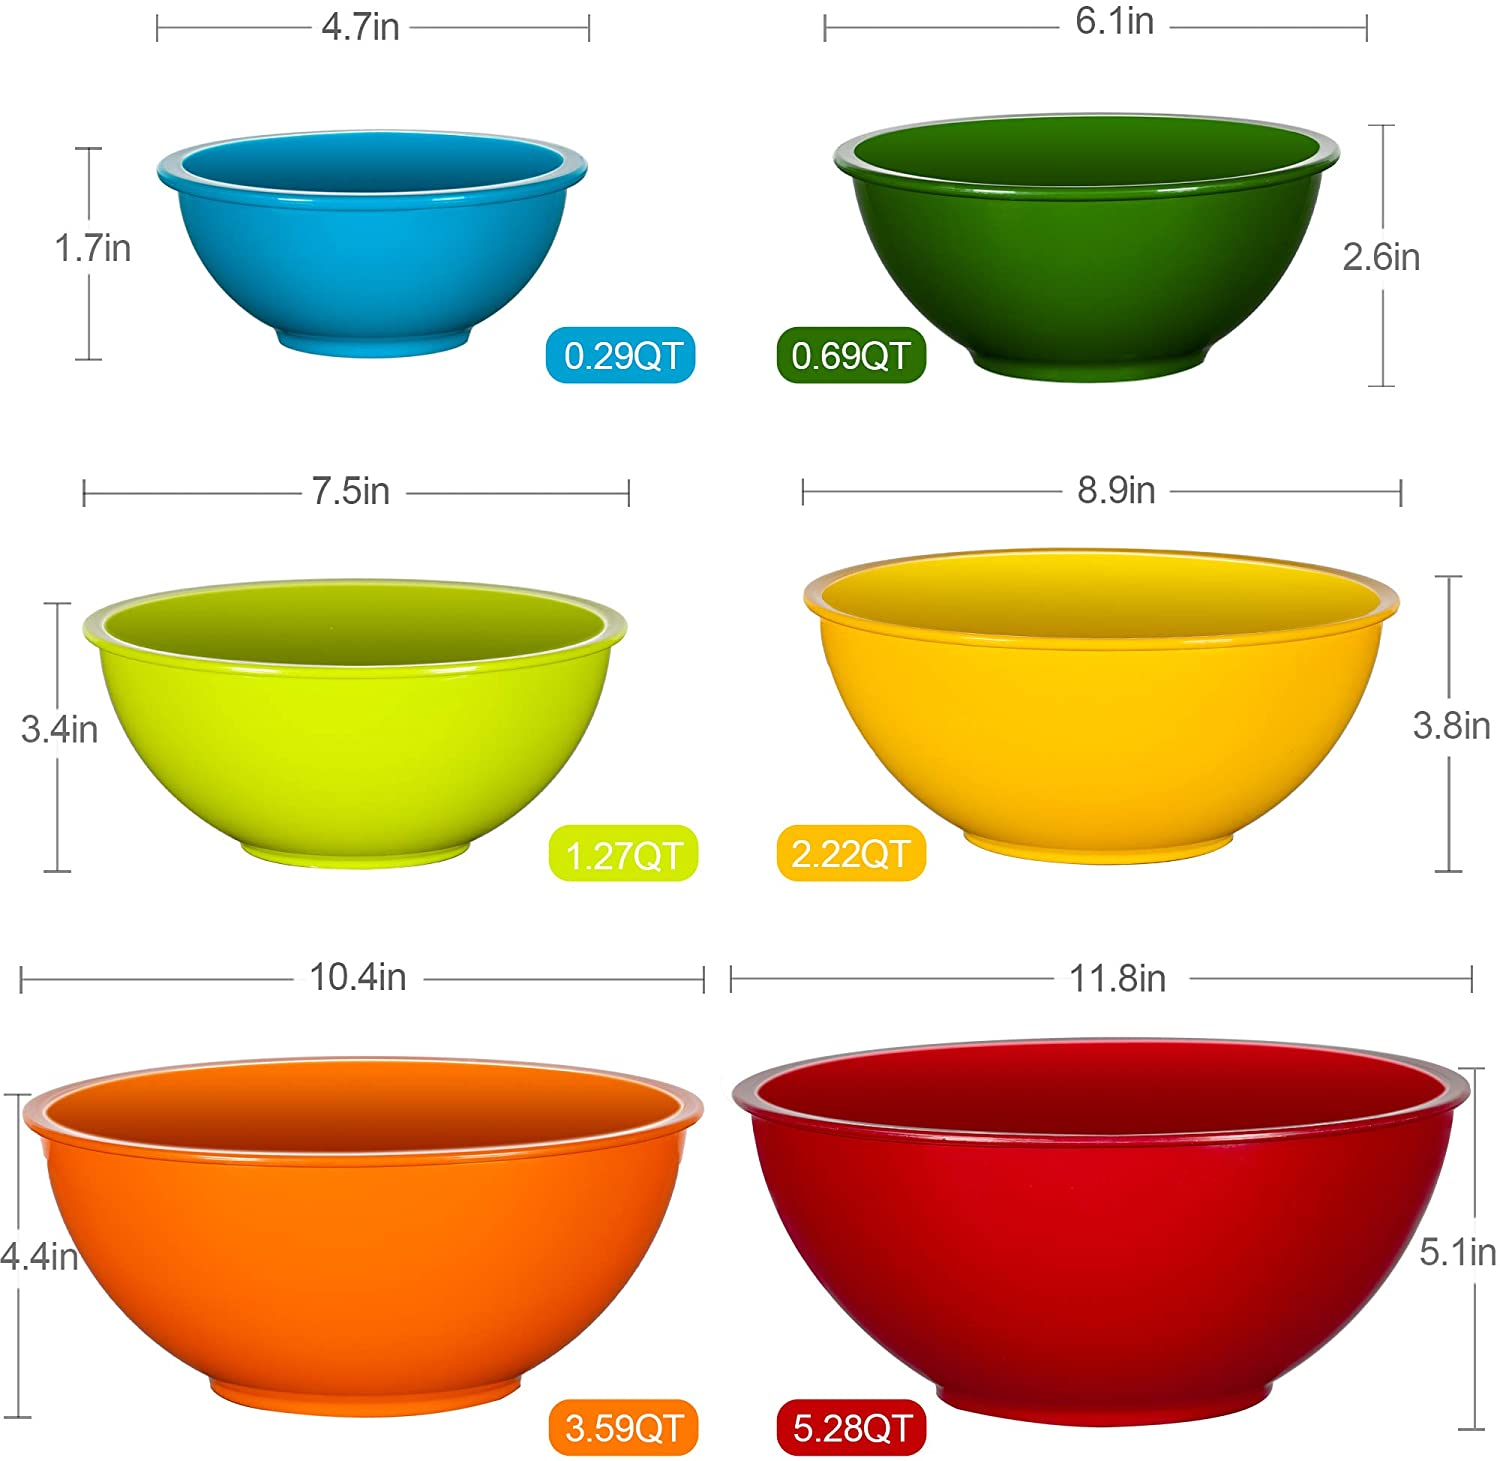 Prepping Cooking and Serving Food YIHONG Plastic Mixing Bowls Set 6 Pcs Serving Bowls for Kitchen Cooking Nesting Bowls Set for Space Saving Storage,Blue Ombre Ideal for Baking